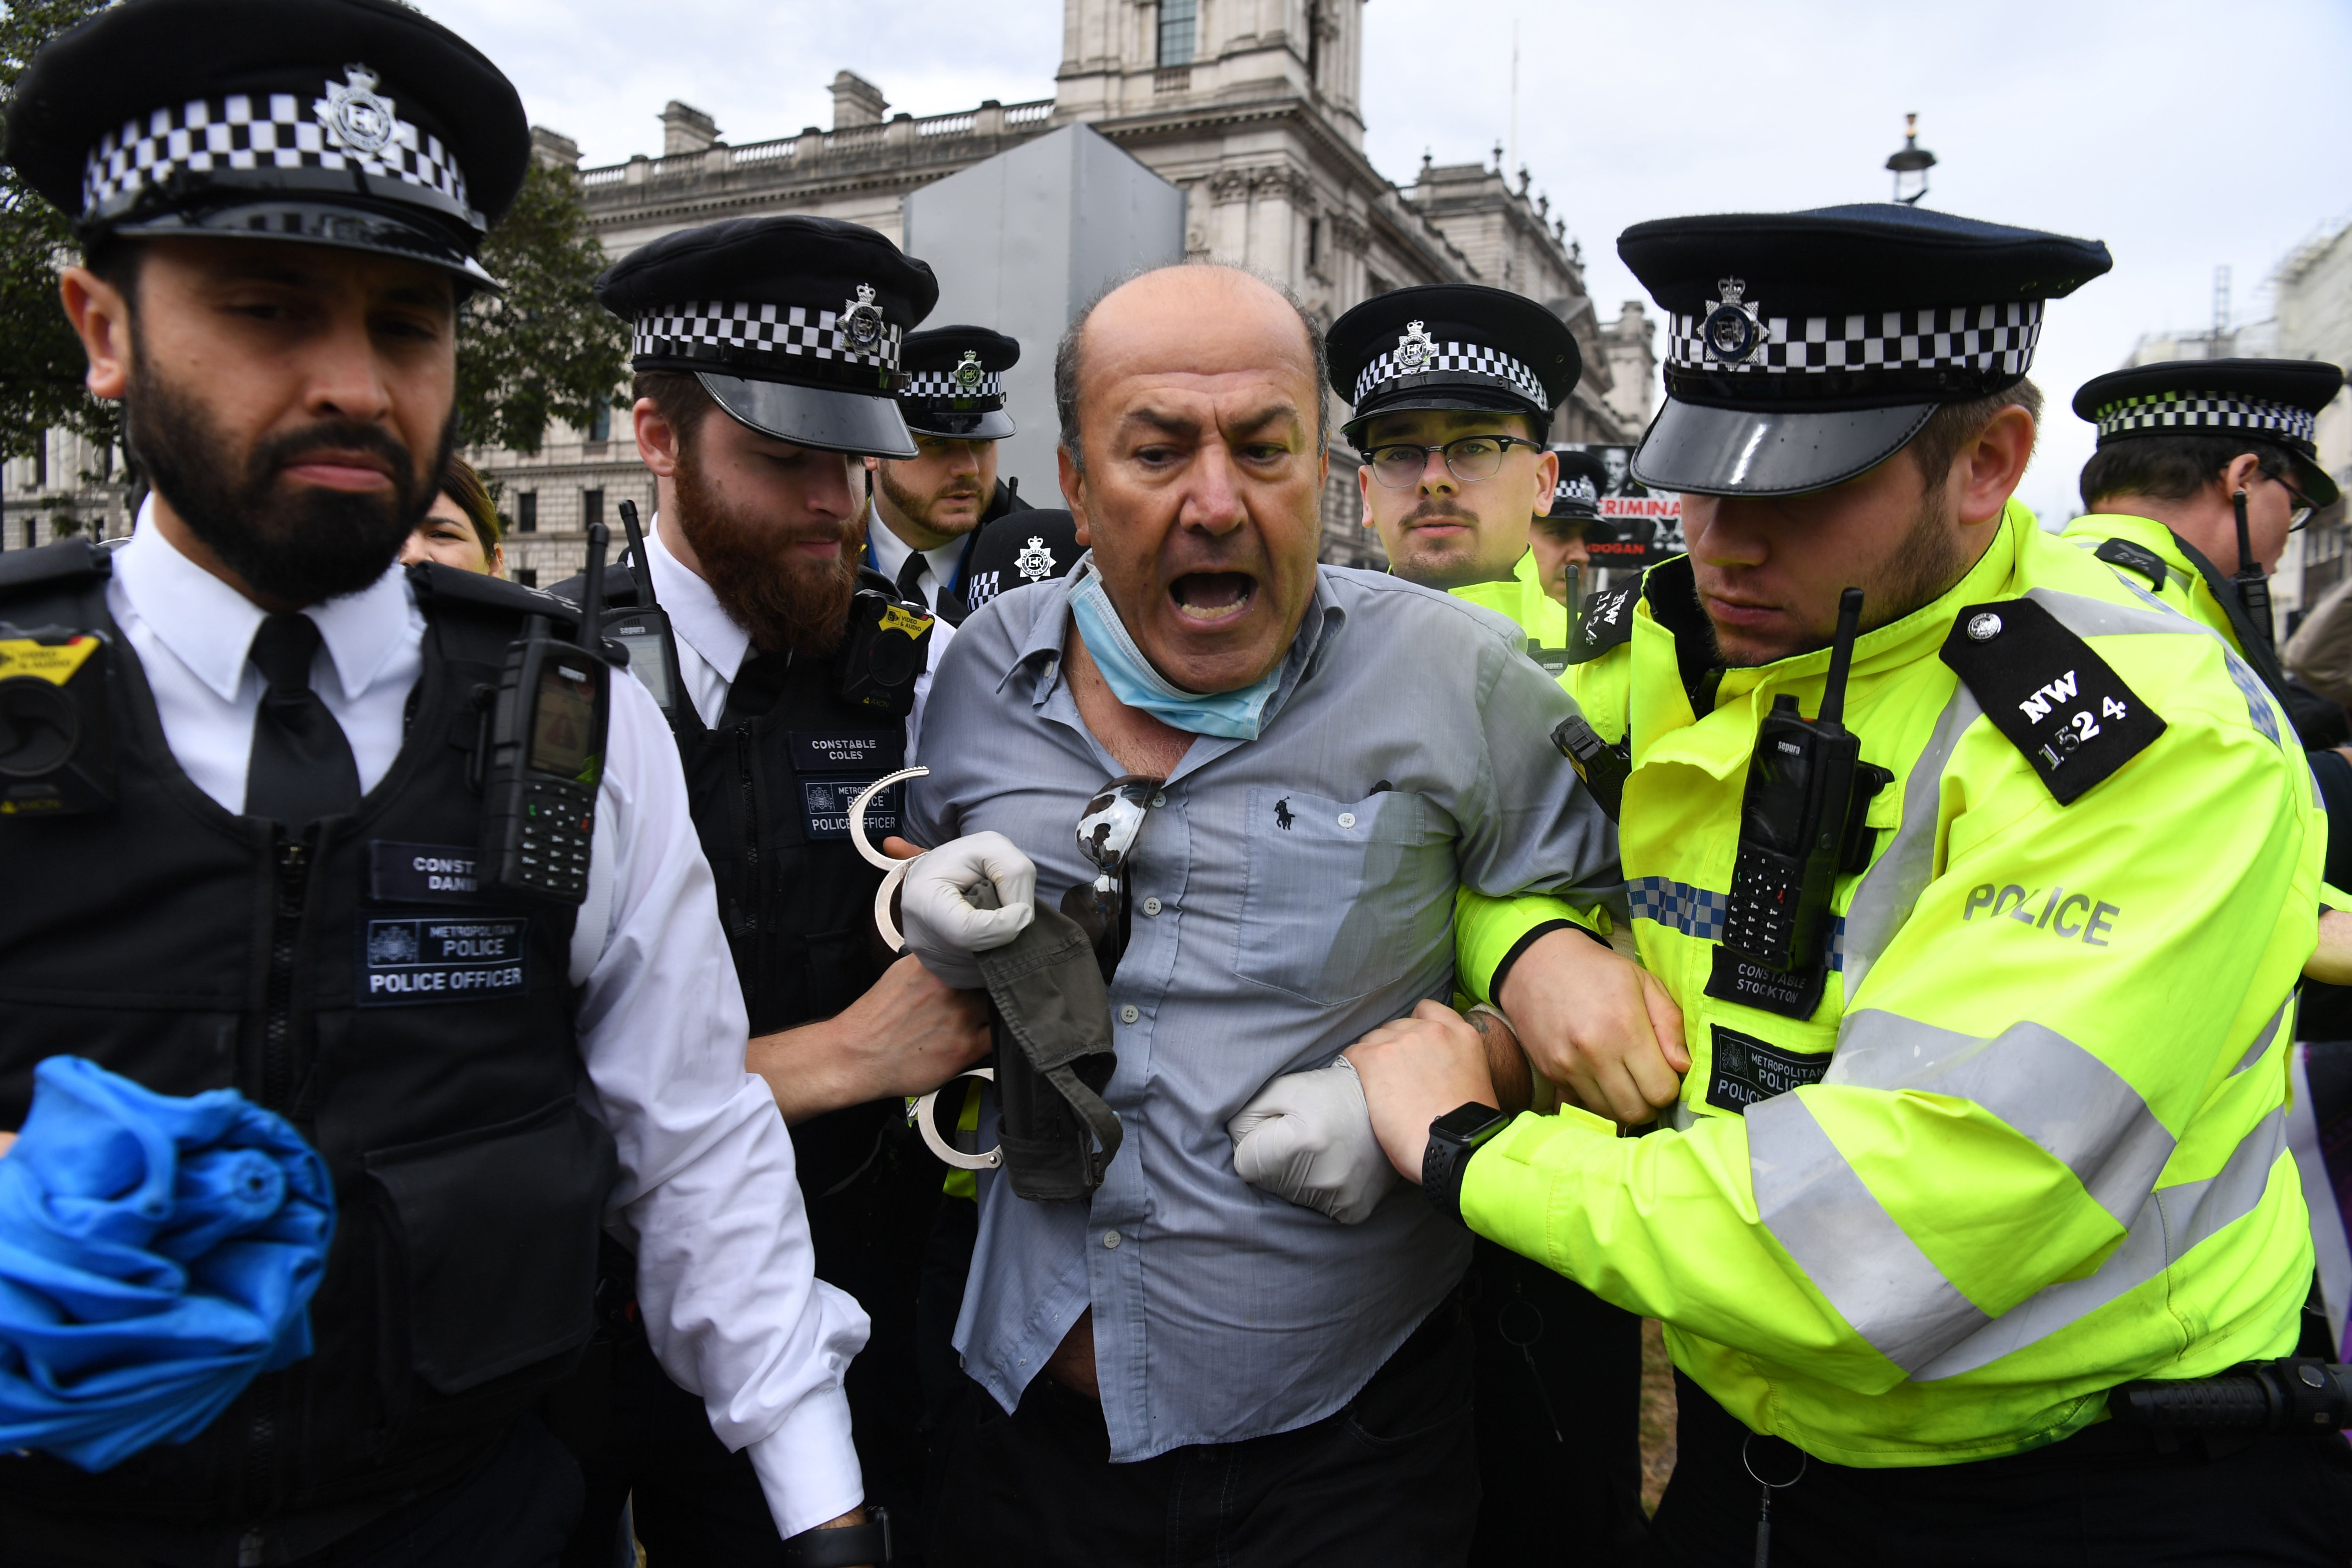 A pro-Kurdish protester who ran into the road toward the car of Britain's Prime Minister Boris Johnson as it was leaving the Houses of Parliament in London on June 17, 2020 is led away by police officers. - The protester ran into the road towards the Jaguar that normally carries the Prime Minister Boris Johnson and was stopped by police. As the Jaguar stopped it was subsequently struck from behind by the next vehicle in the convoy resulting in a large dent. (Photo by DANIEL LEAL-OLIVAS / AFP) (Photo by DANIEL LEAL-OLIVAS/AFP via Getty Images)